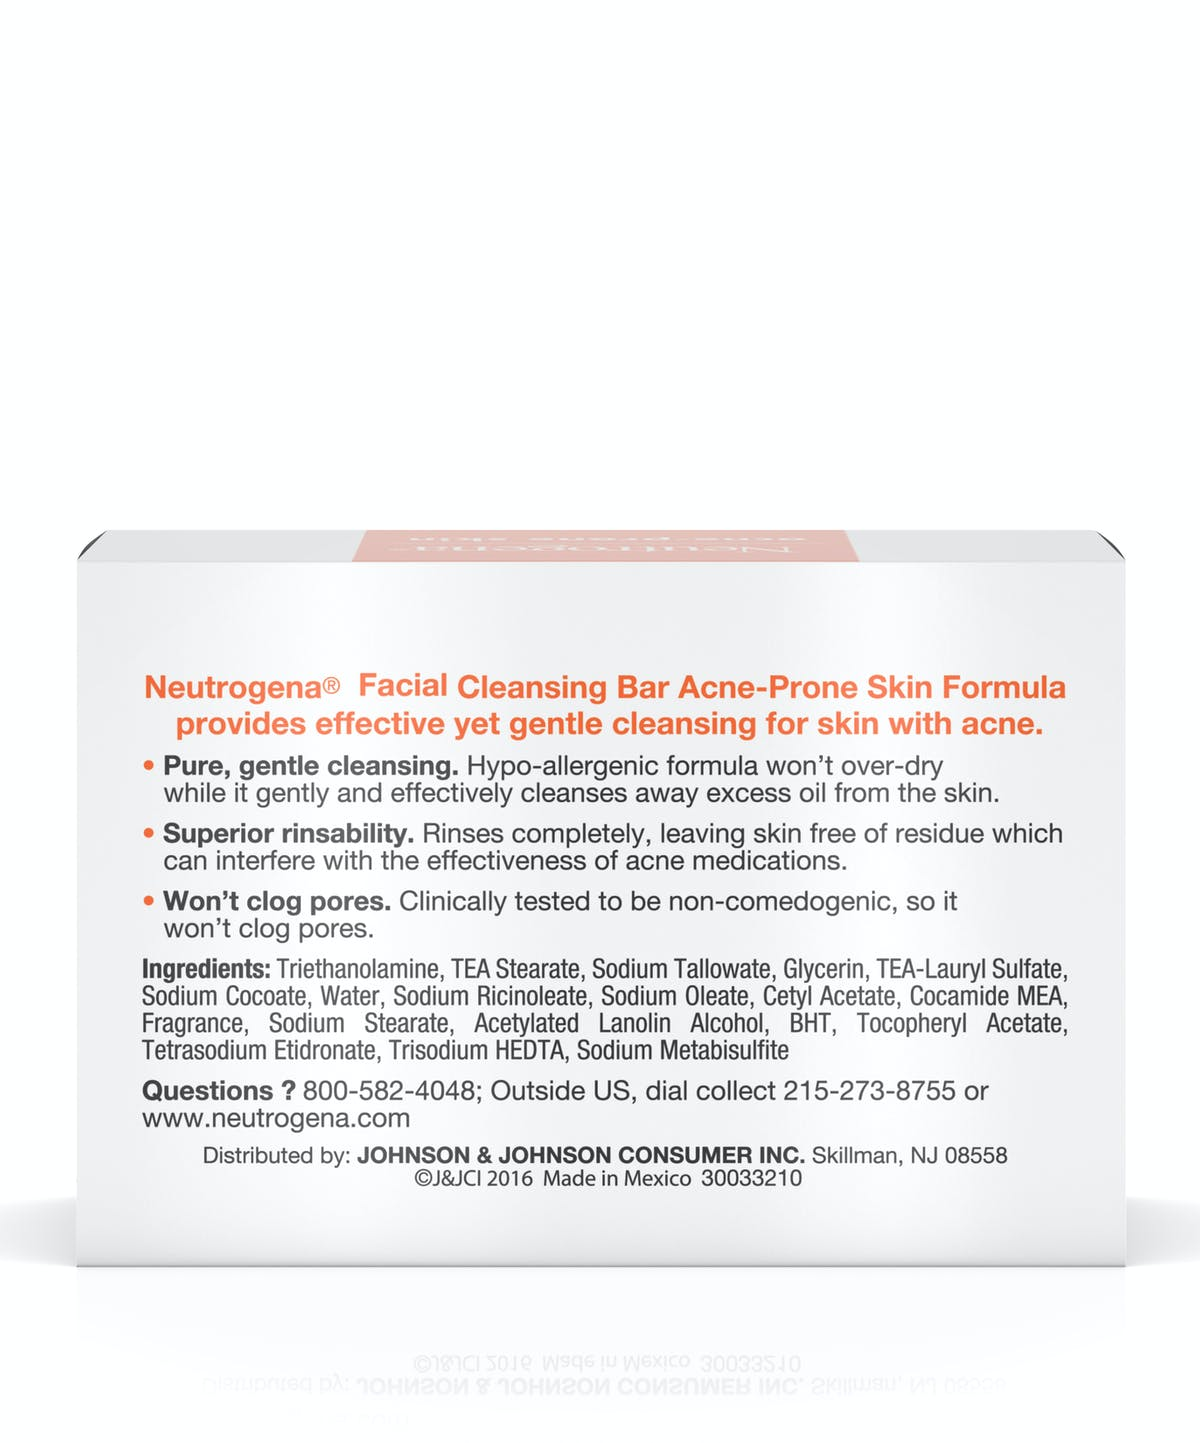 Facial Cleansing Bar For Acne Prone Skin Neutrogena